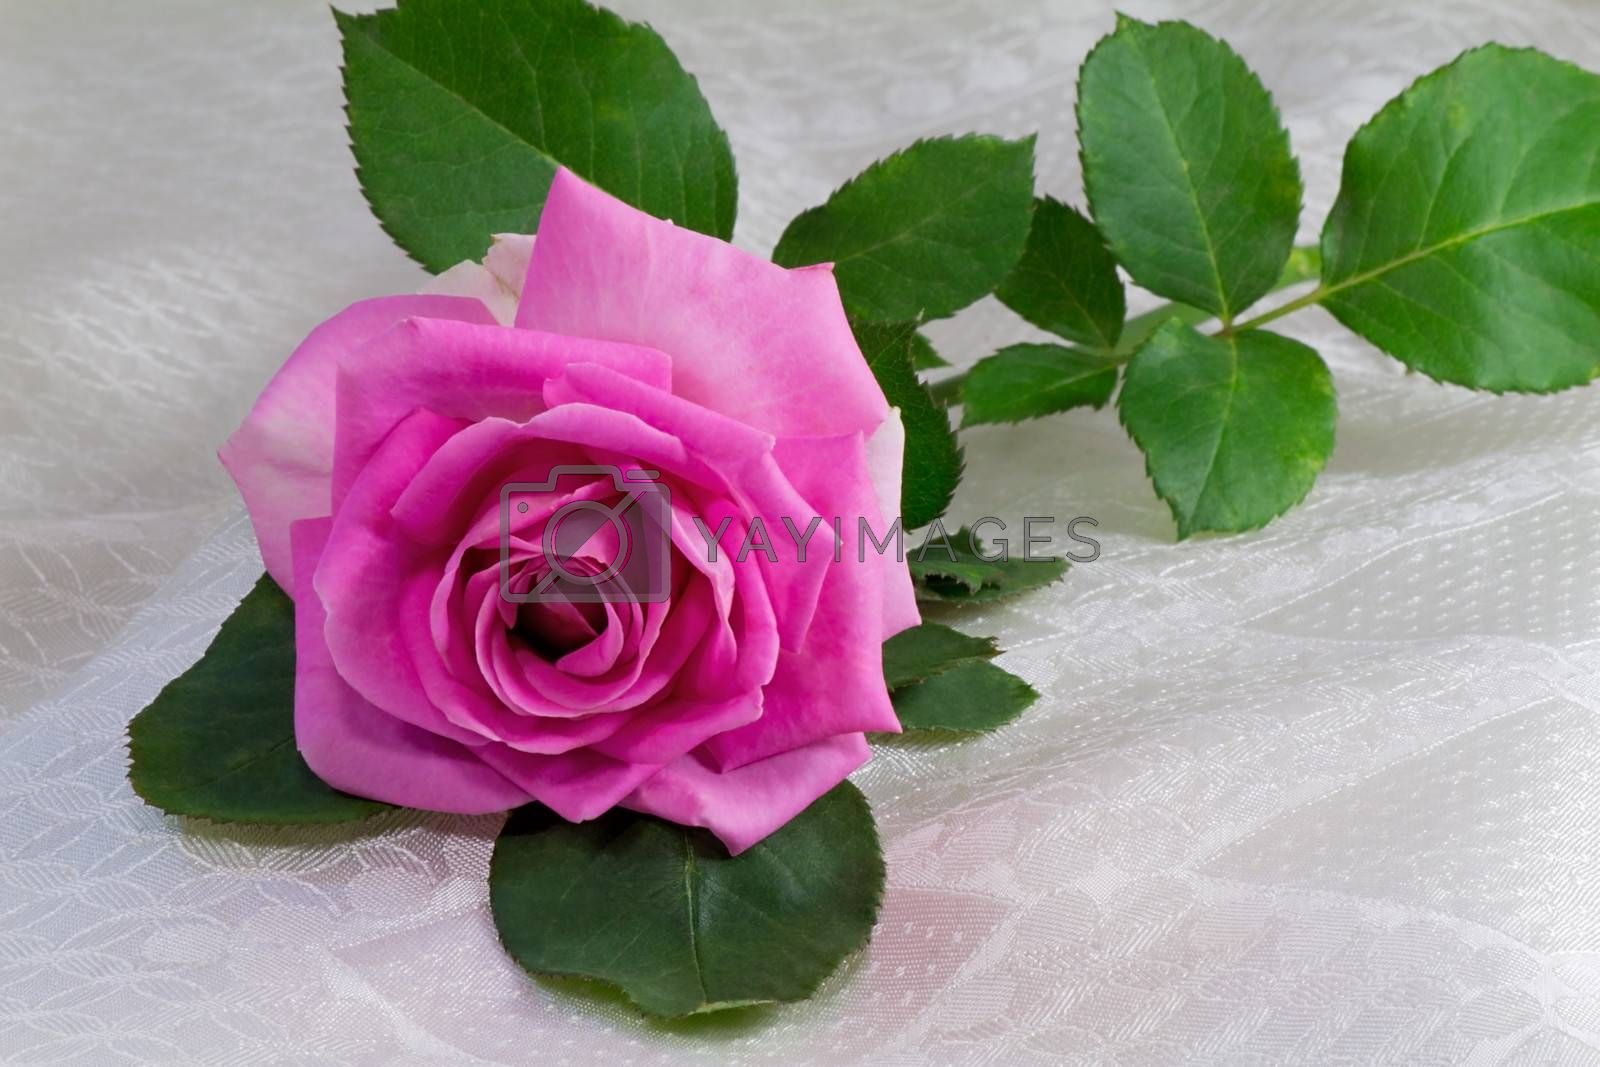 Big bright-pink rose garden with leaves lying on a white silk veil.